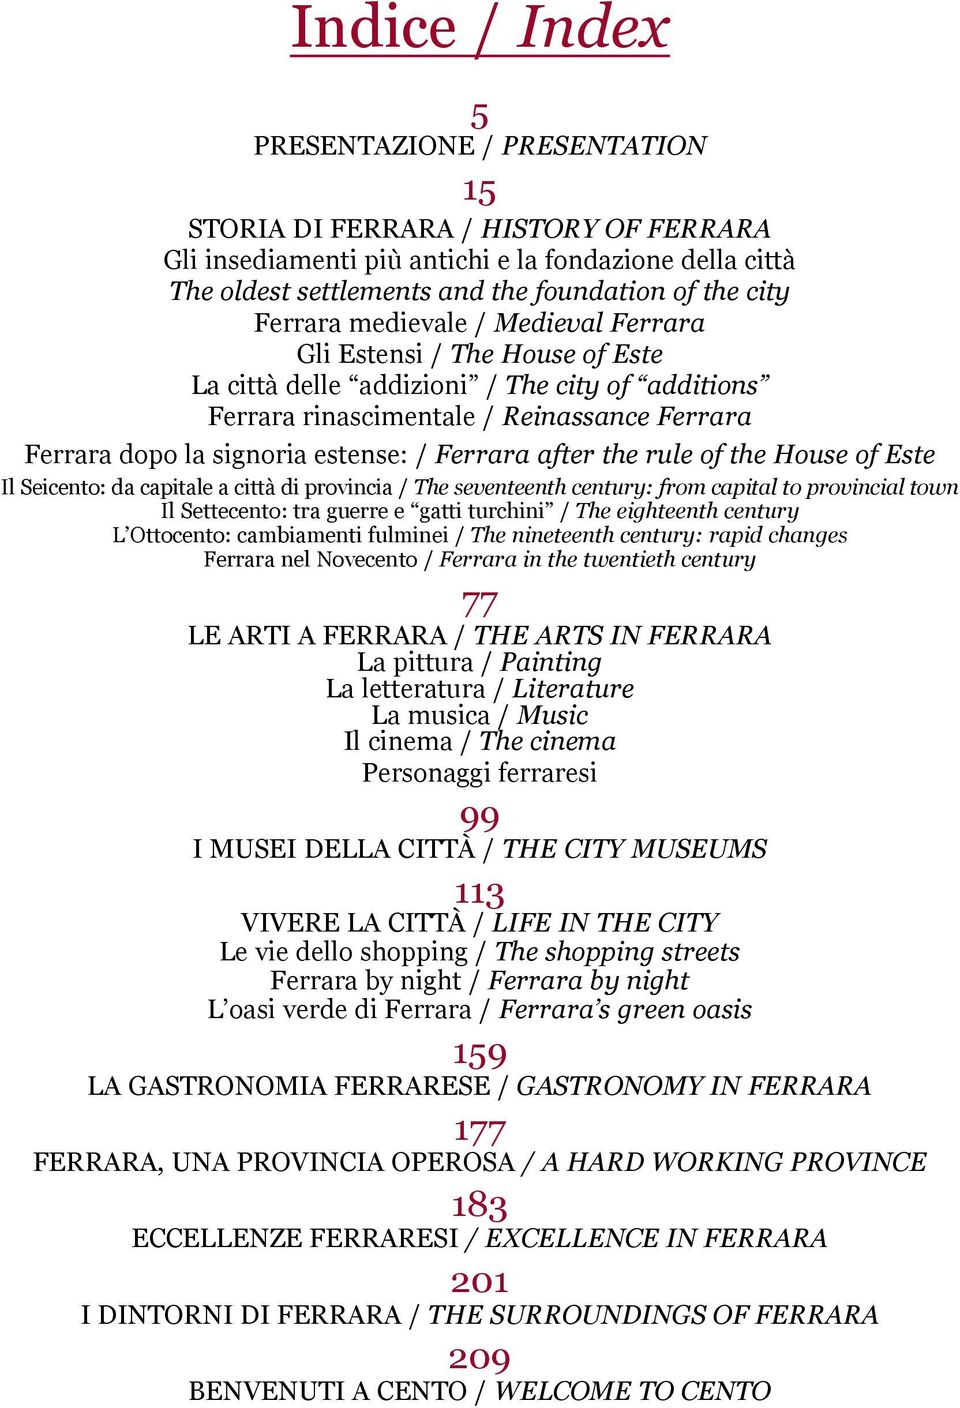 Ferrara after the rule of the House of Este Il Seicento: da capitale a città di provincia / The seventeenth century: from capital to provincial town Il Settecento: tra guerre e gatti turchini / The